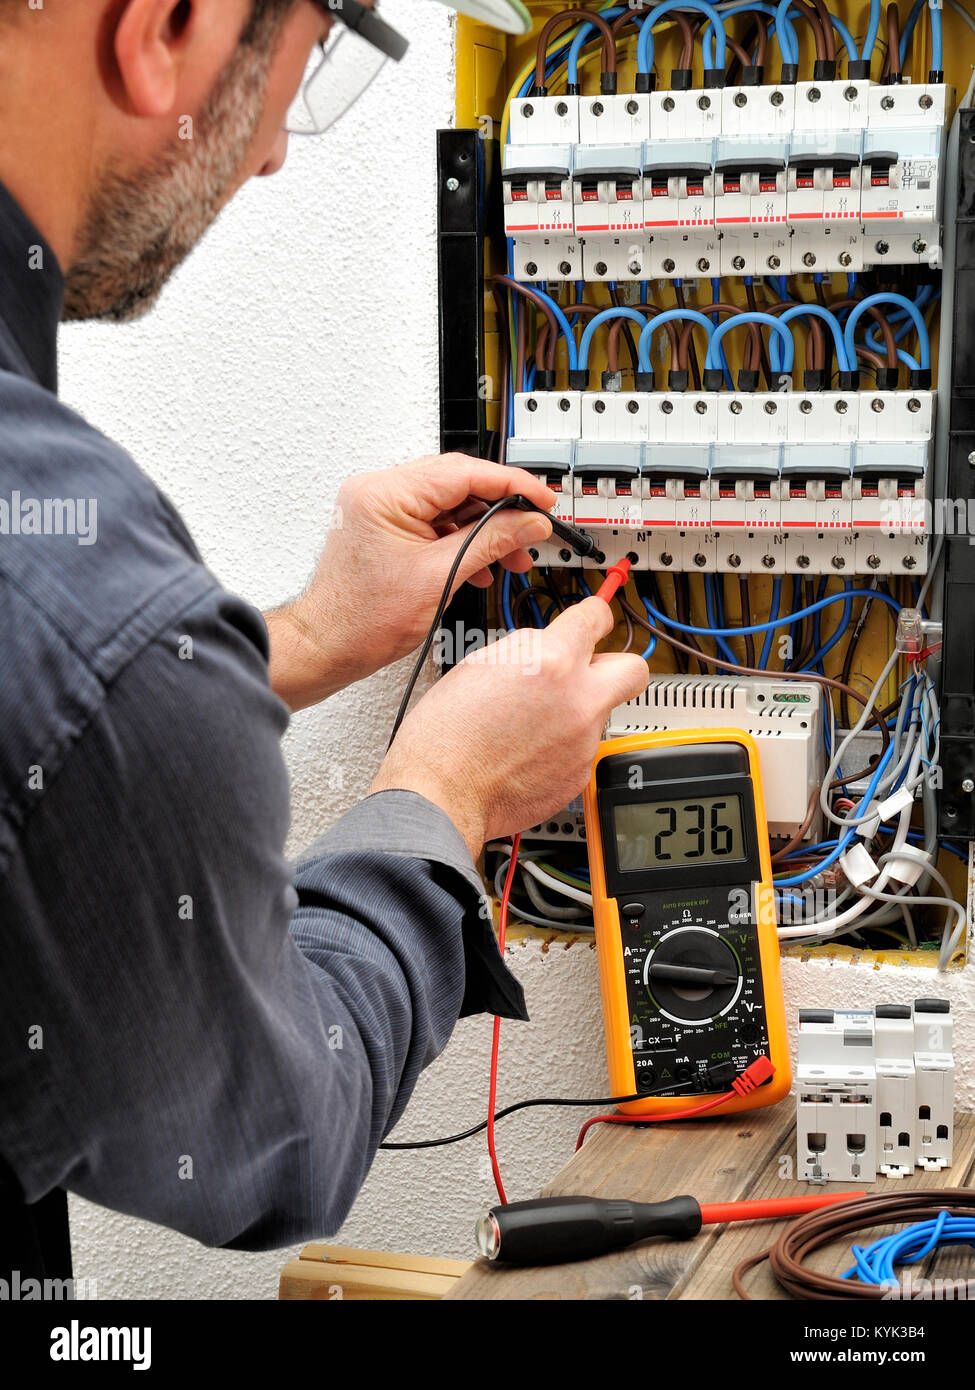 Technical electrician measures the voltage of a circuit breaker of a ...